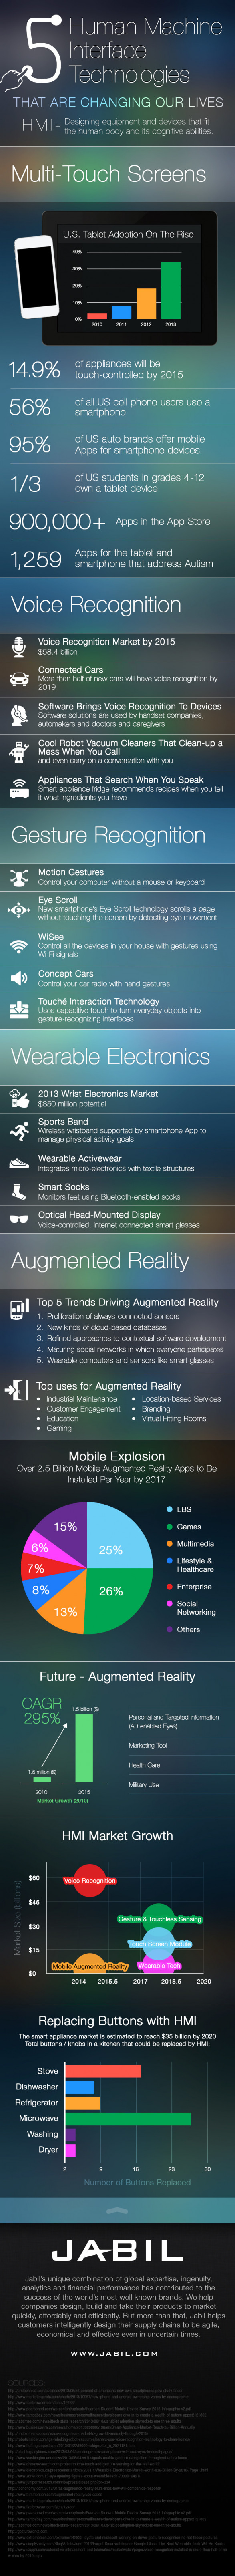 5 Human Machine Interface (HMI) Technologies that are Changing our Lives